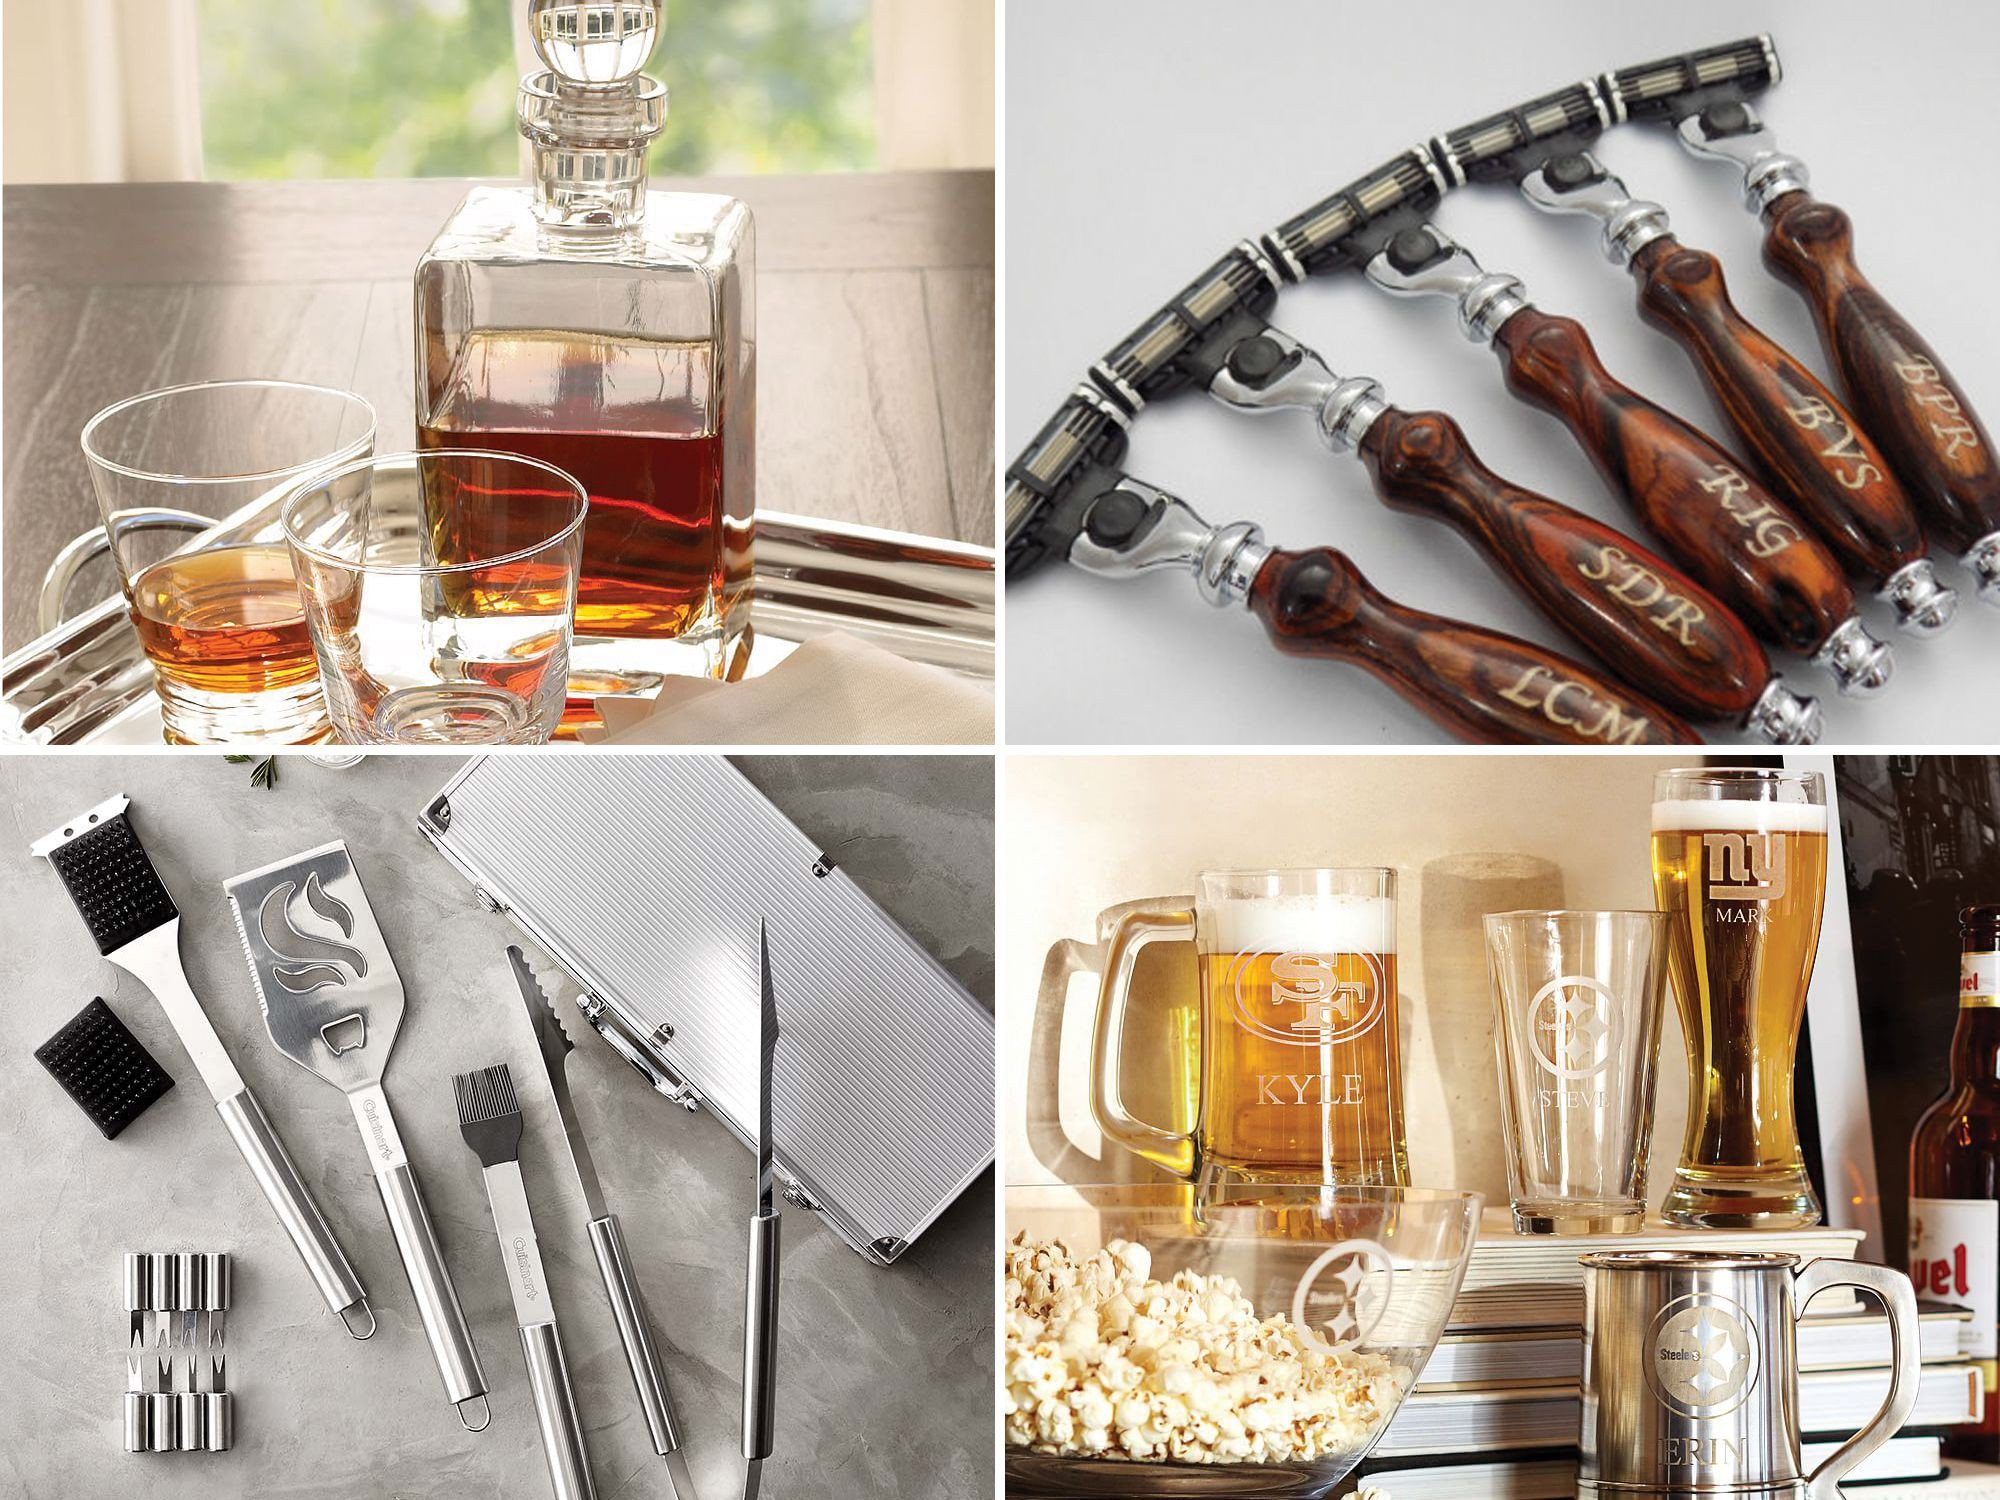 Best ideas about Groom Gift Ideas . Save or Pin 48 Groomsmen Gift Ideas Now.